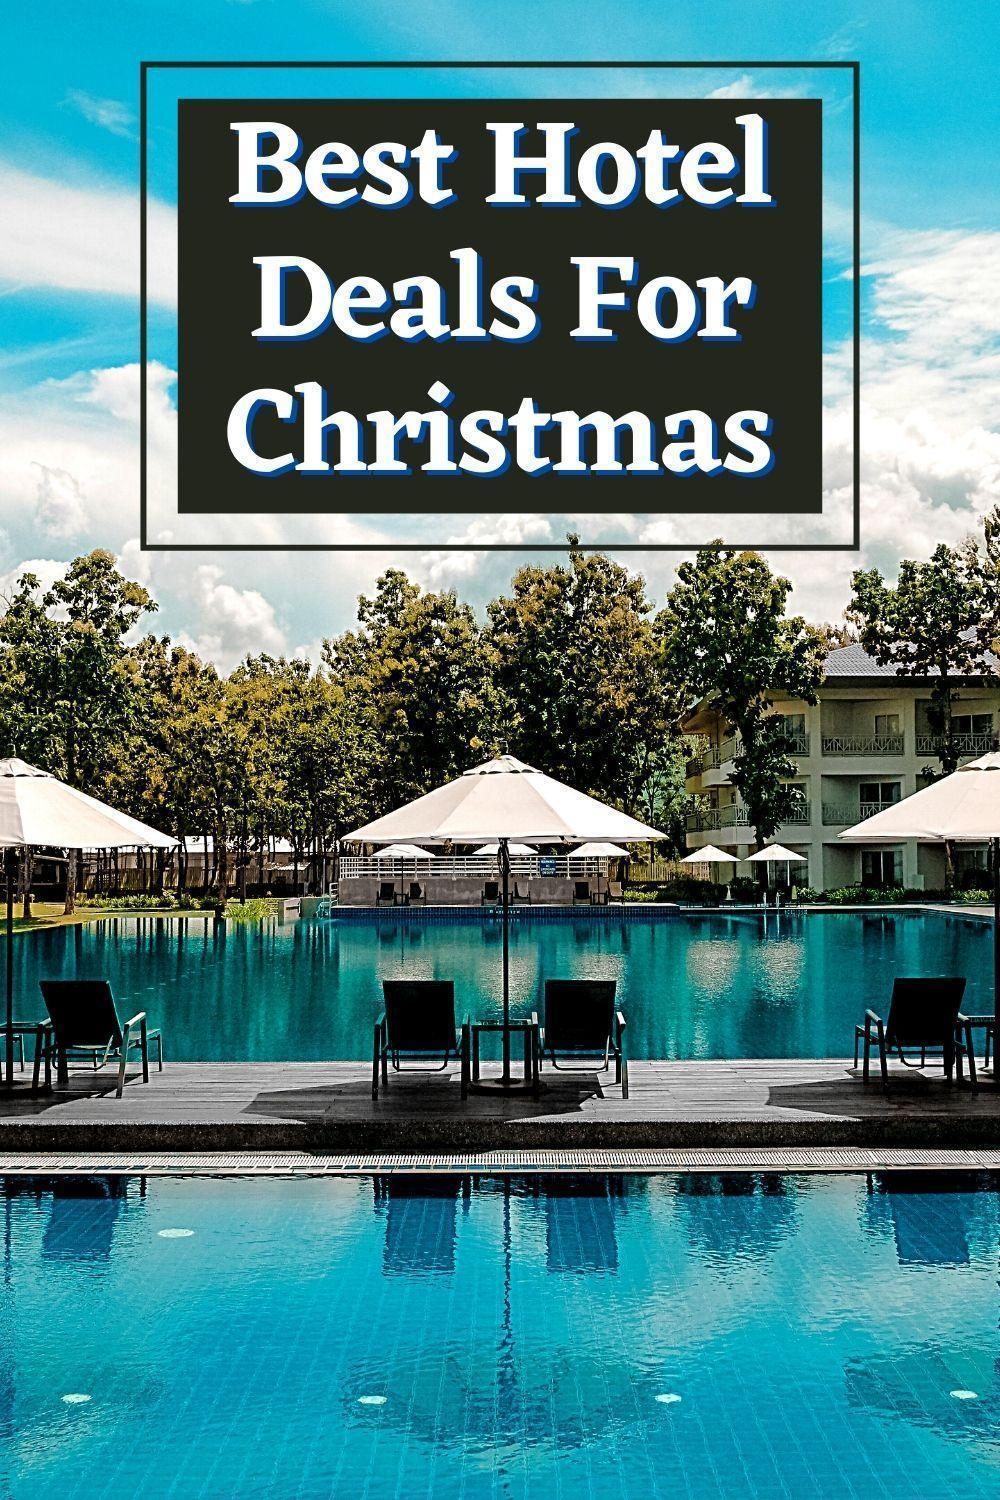 Best Hotel Deals This Christmas